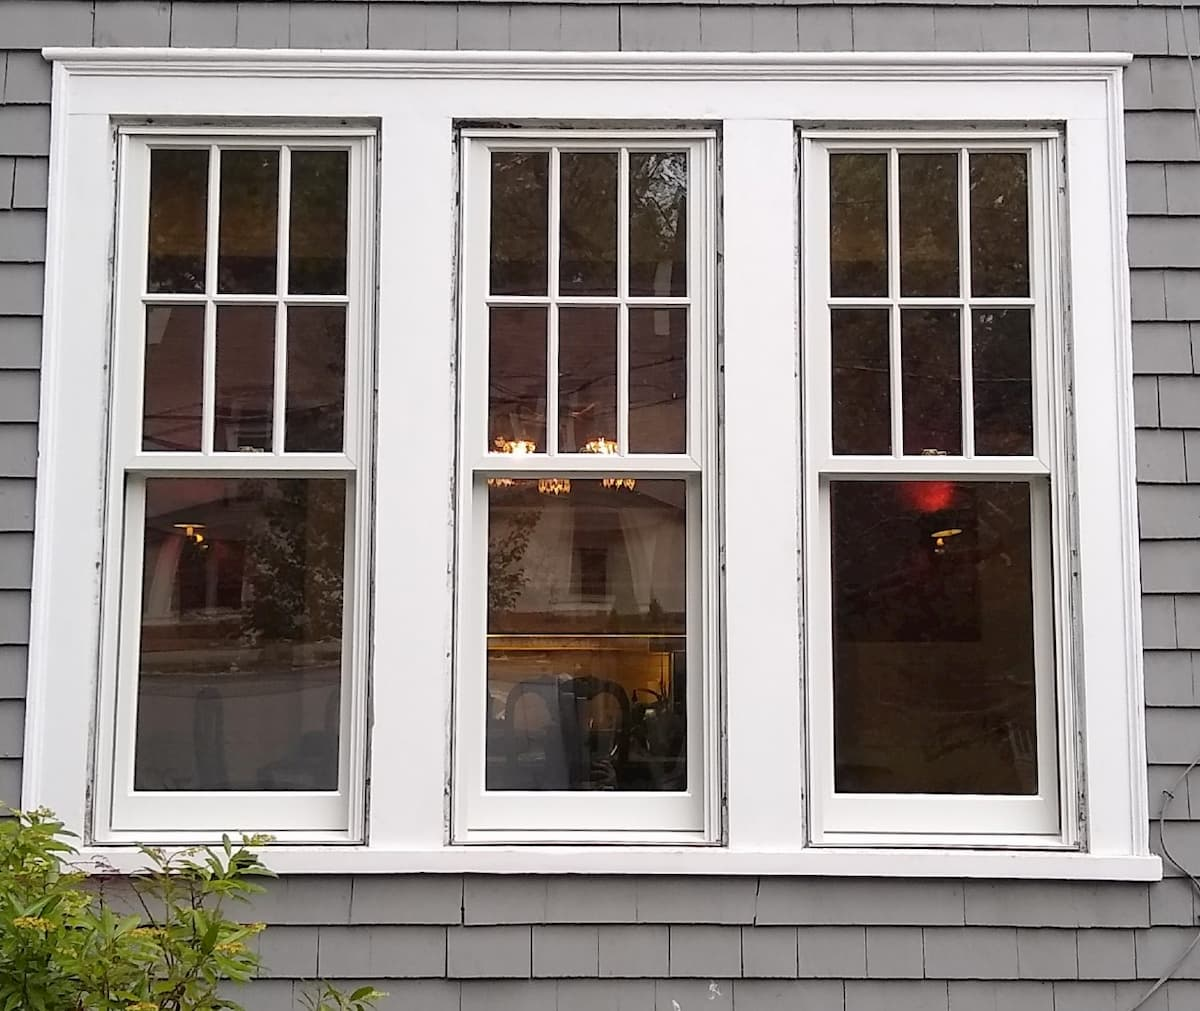 Exterior view of three white wood double-hung windows.